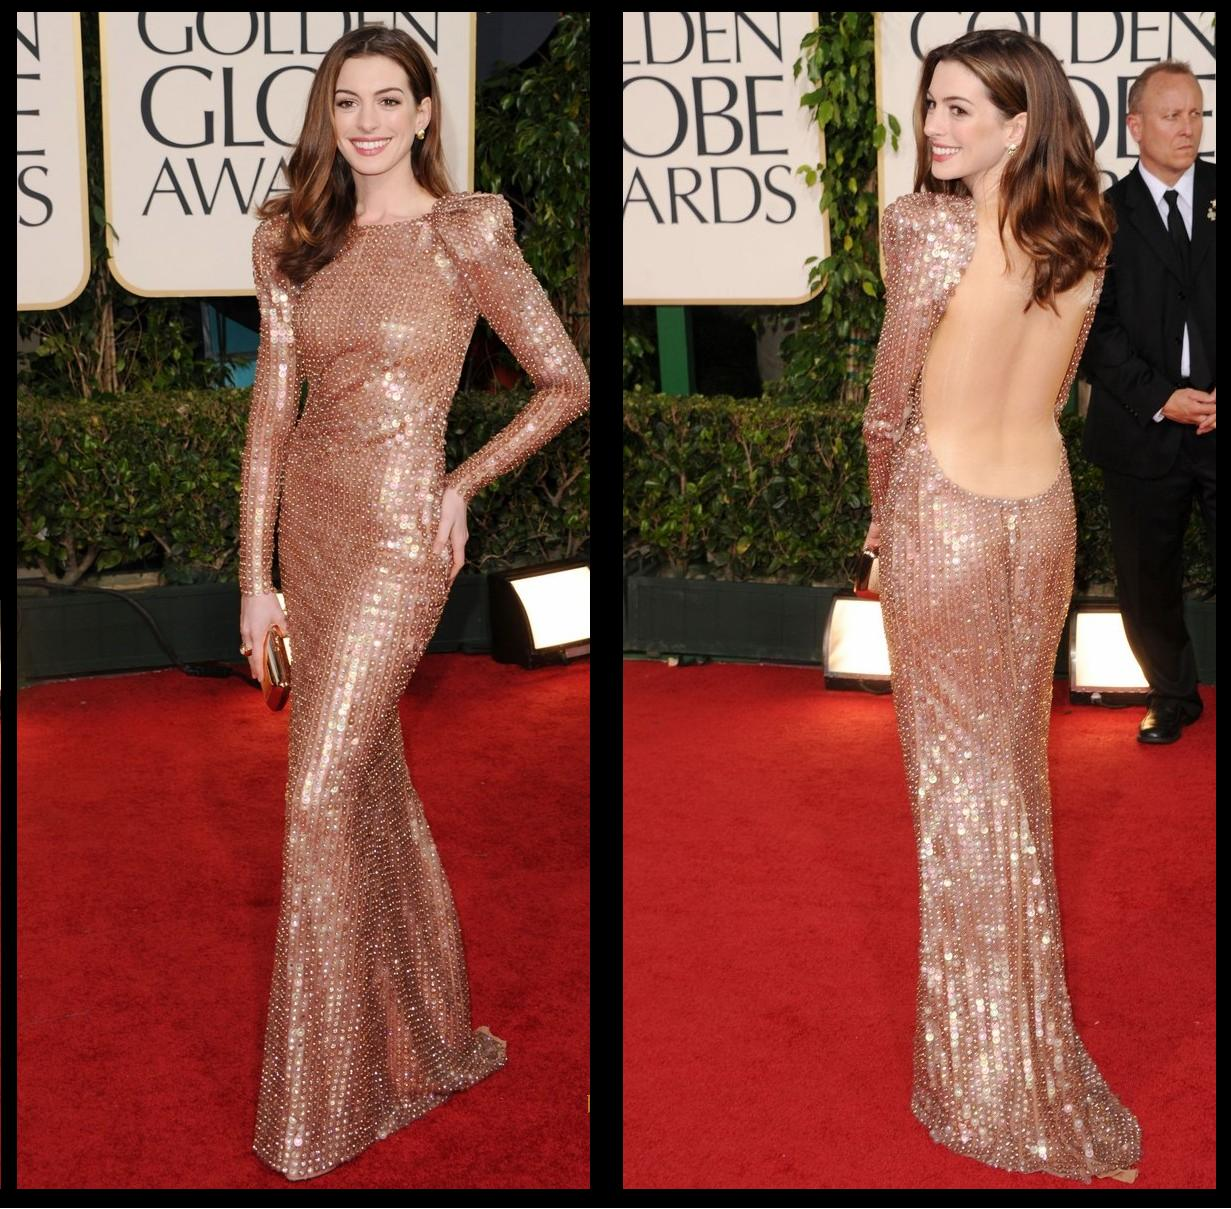 Style Smiles: My Winners For The 2011 Golden Globes